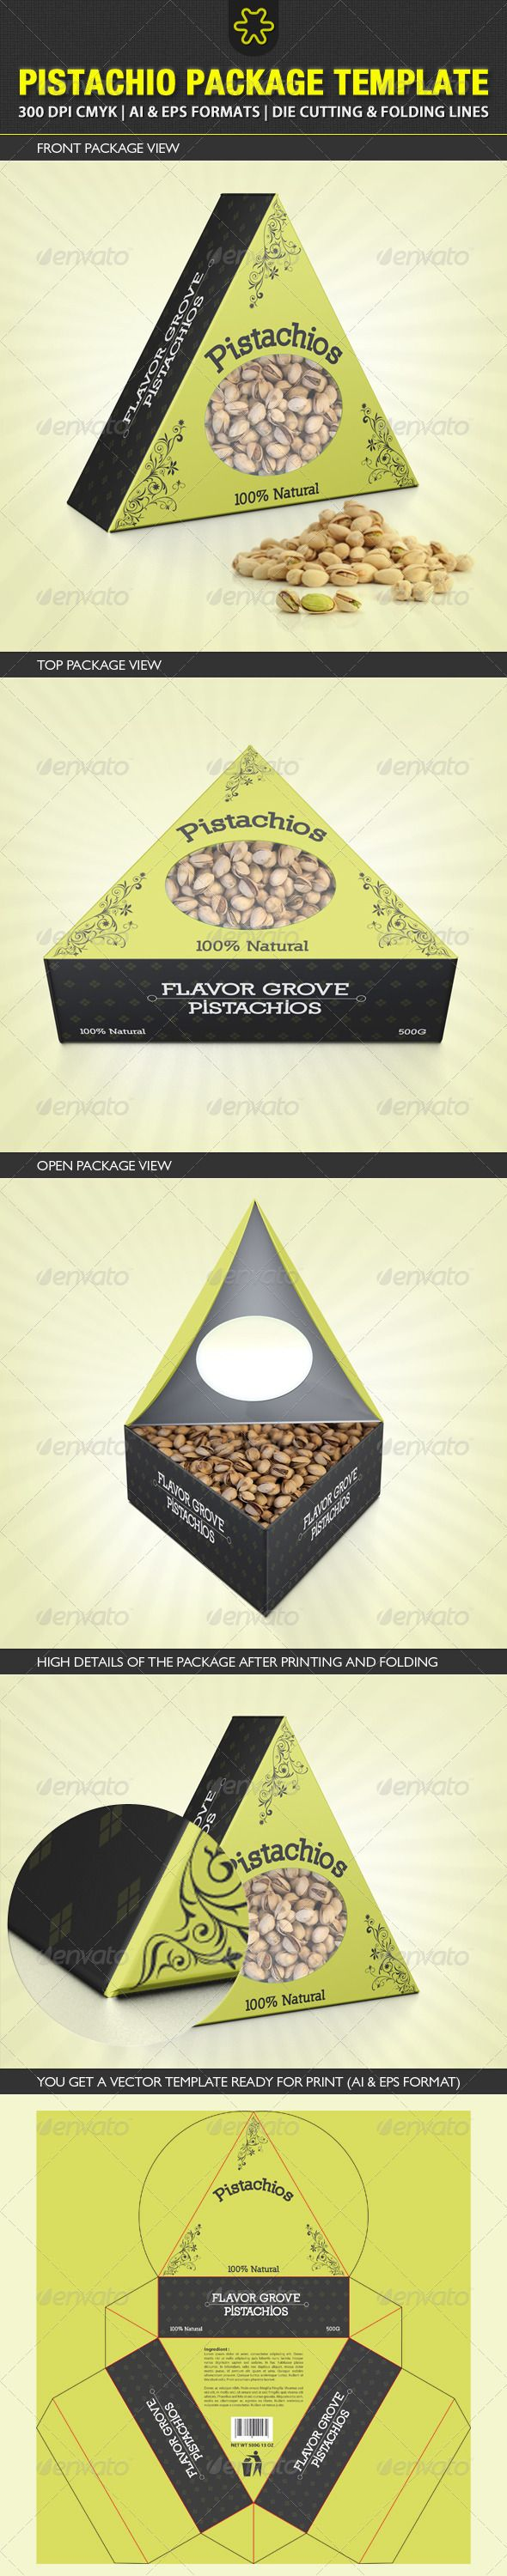 Pistachio Packaging Template - Packaging Print Templates 2623020